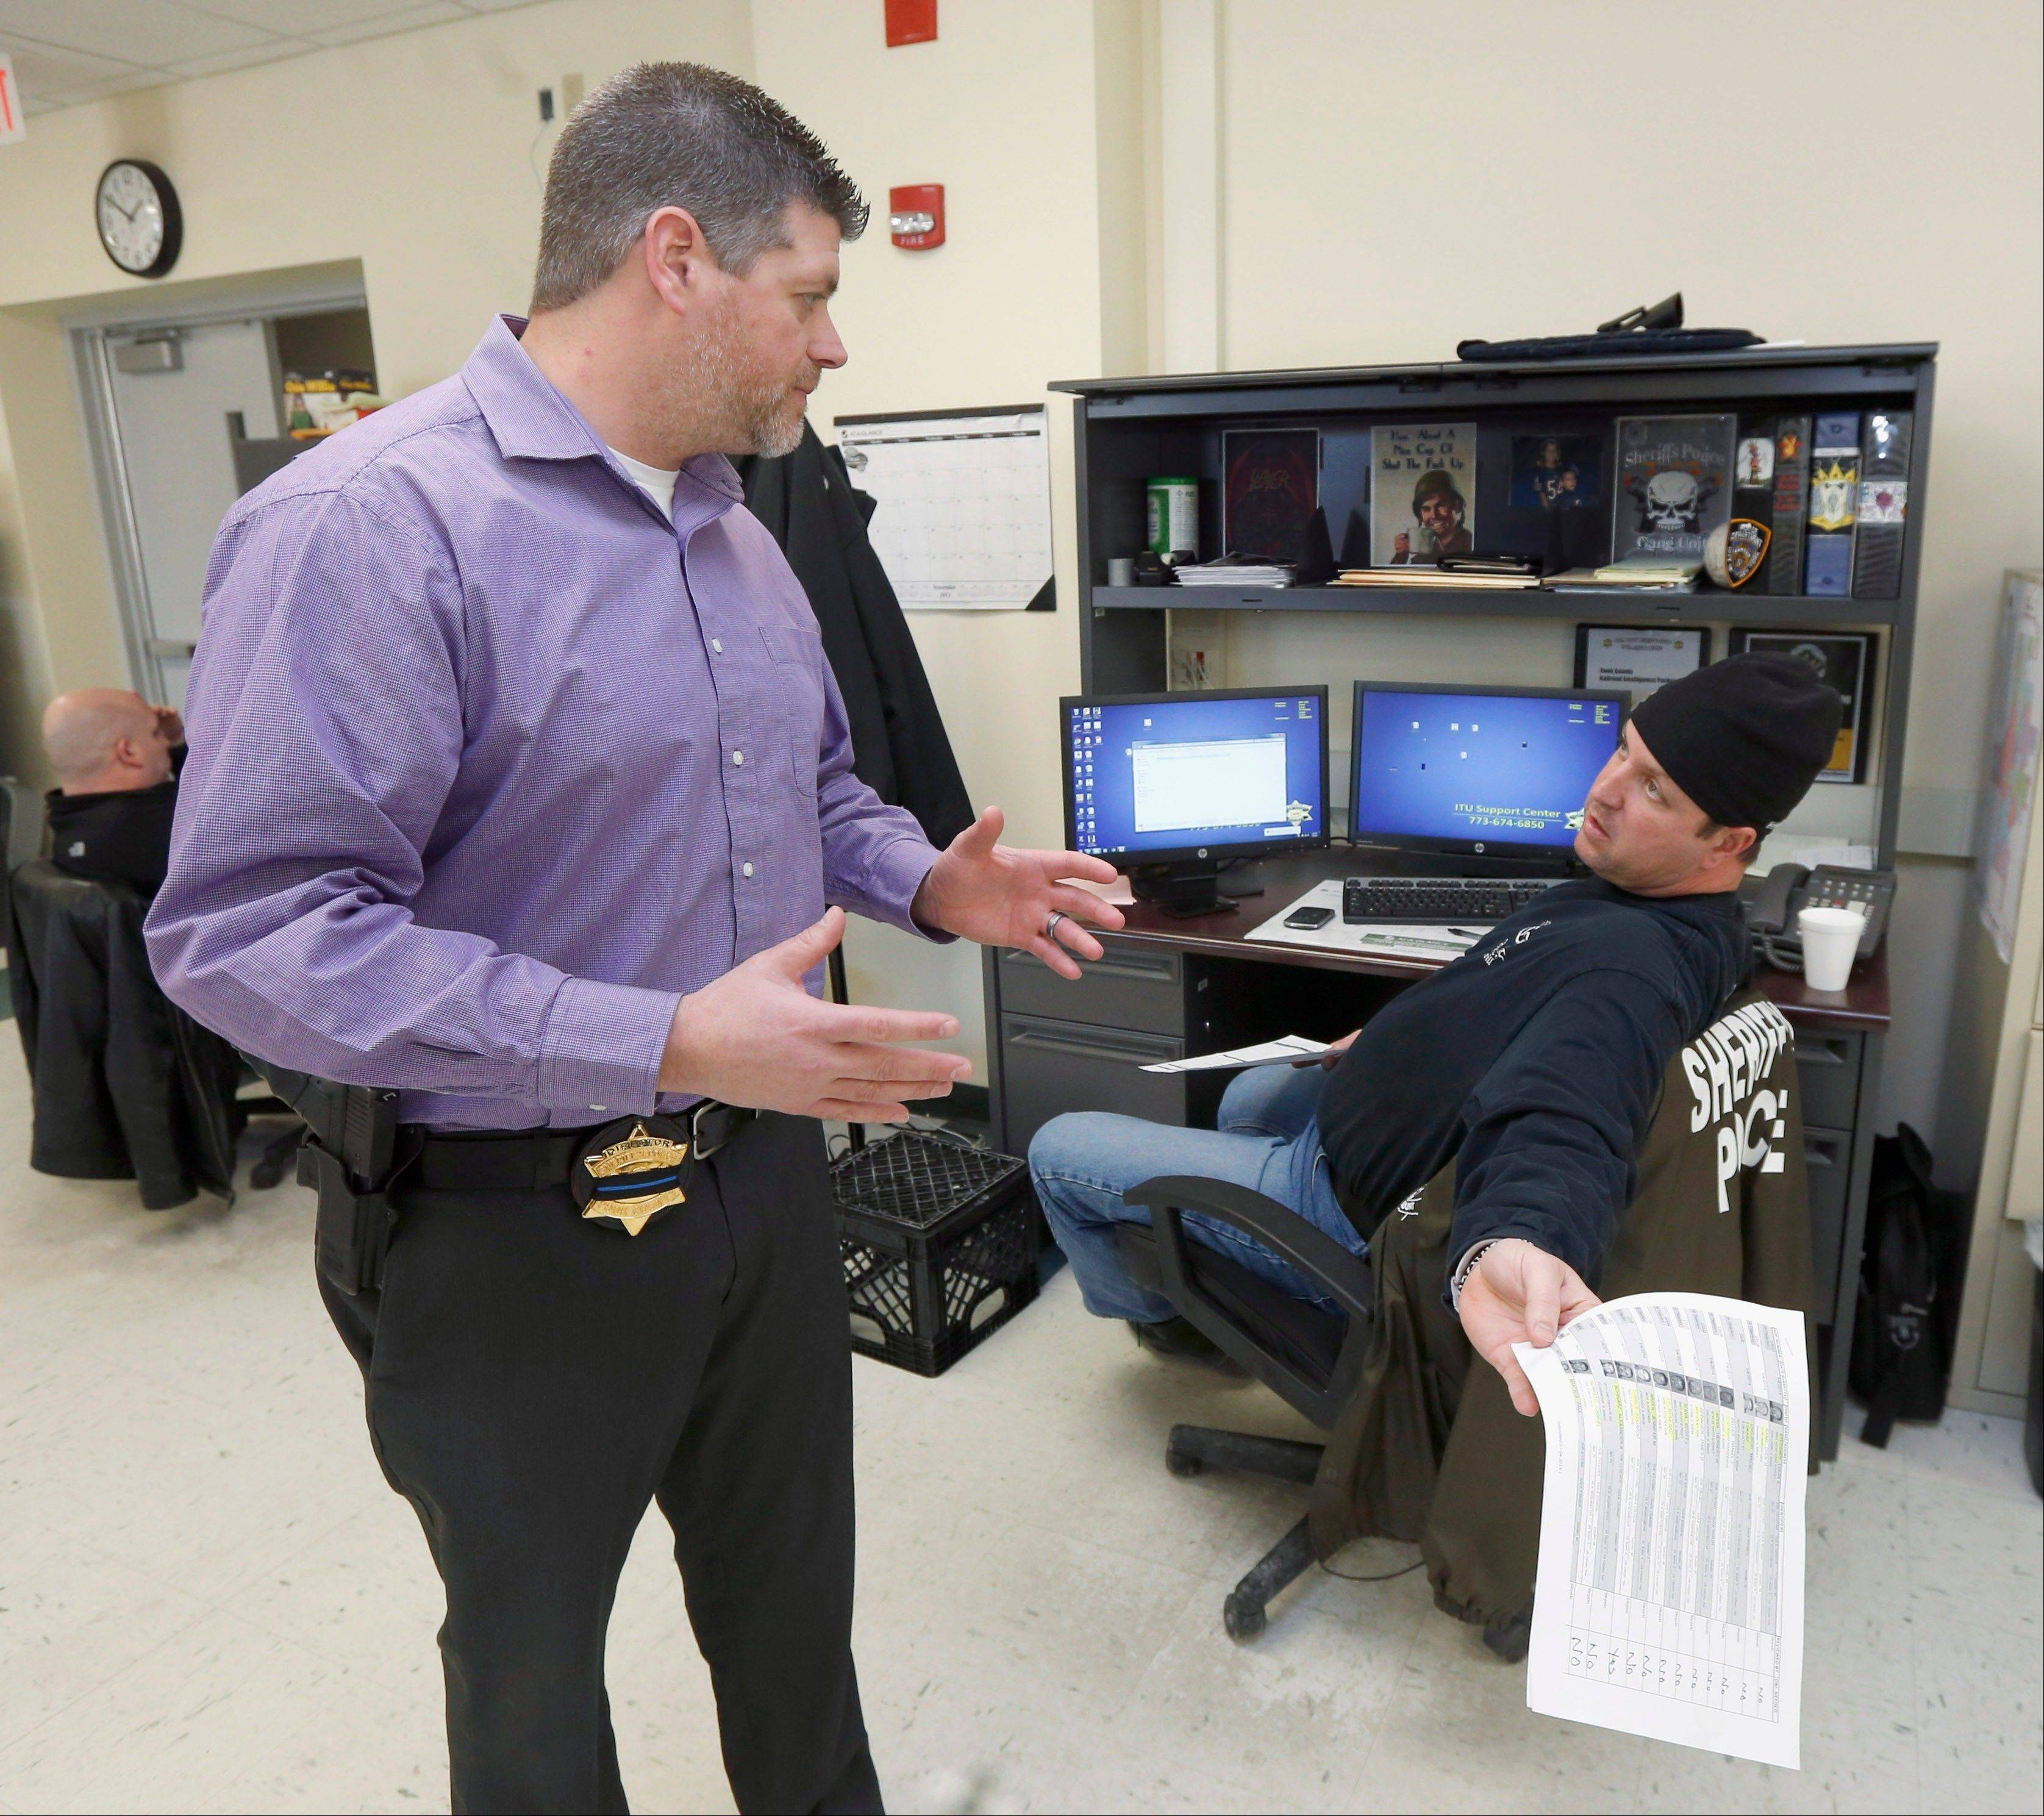 John Blair, left, executive director of the Cook County Sheriff�s Office Intelligence Center, consults with officer John Slepski last week about a firearms background check Slepski is performing at the center.